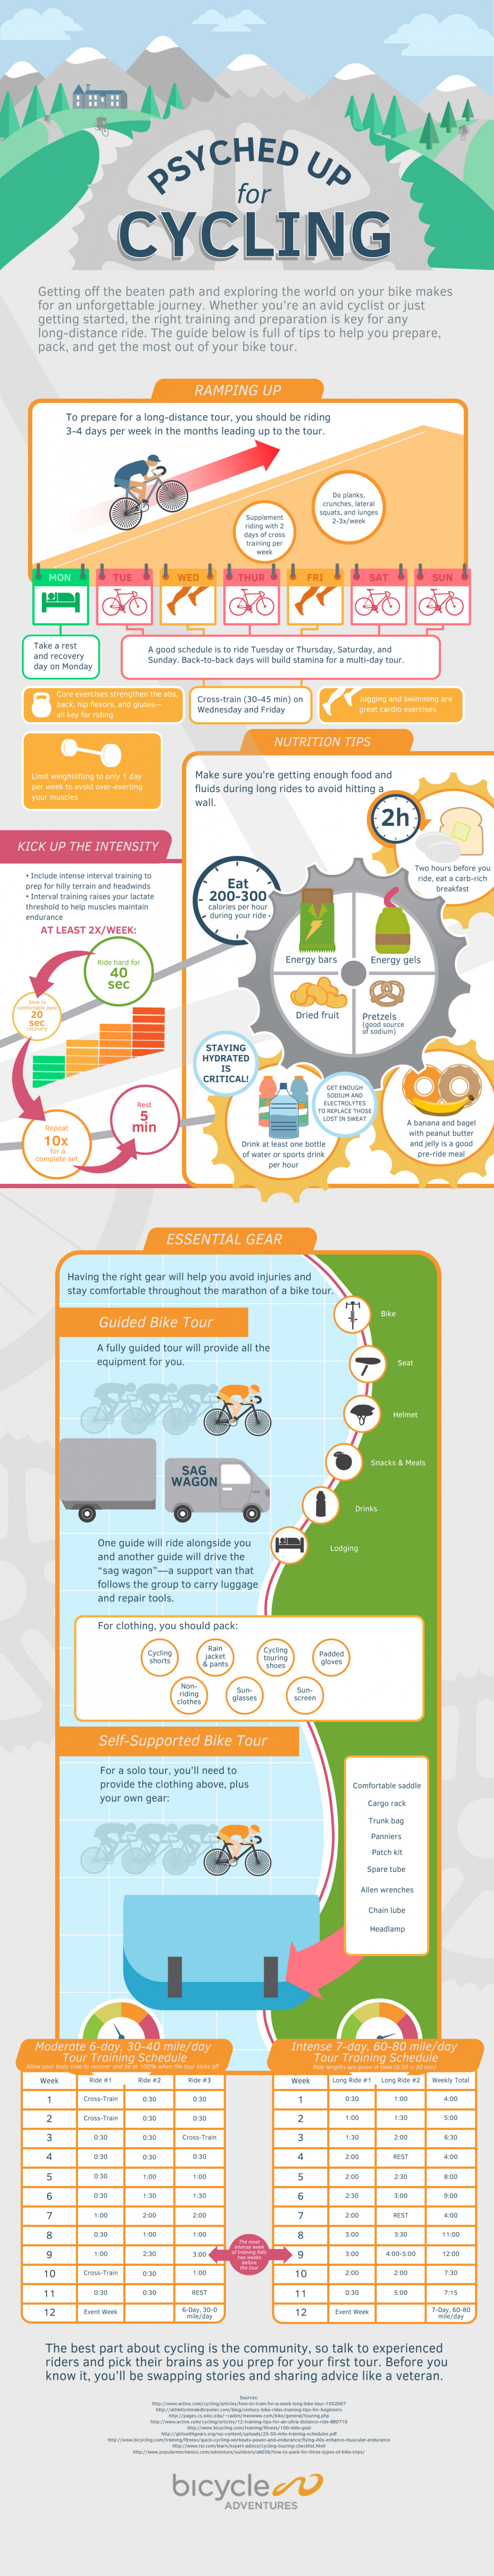 Psyched Up for Cycling: Preparing for a Bike Tour Infographic